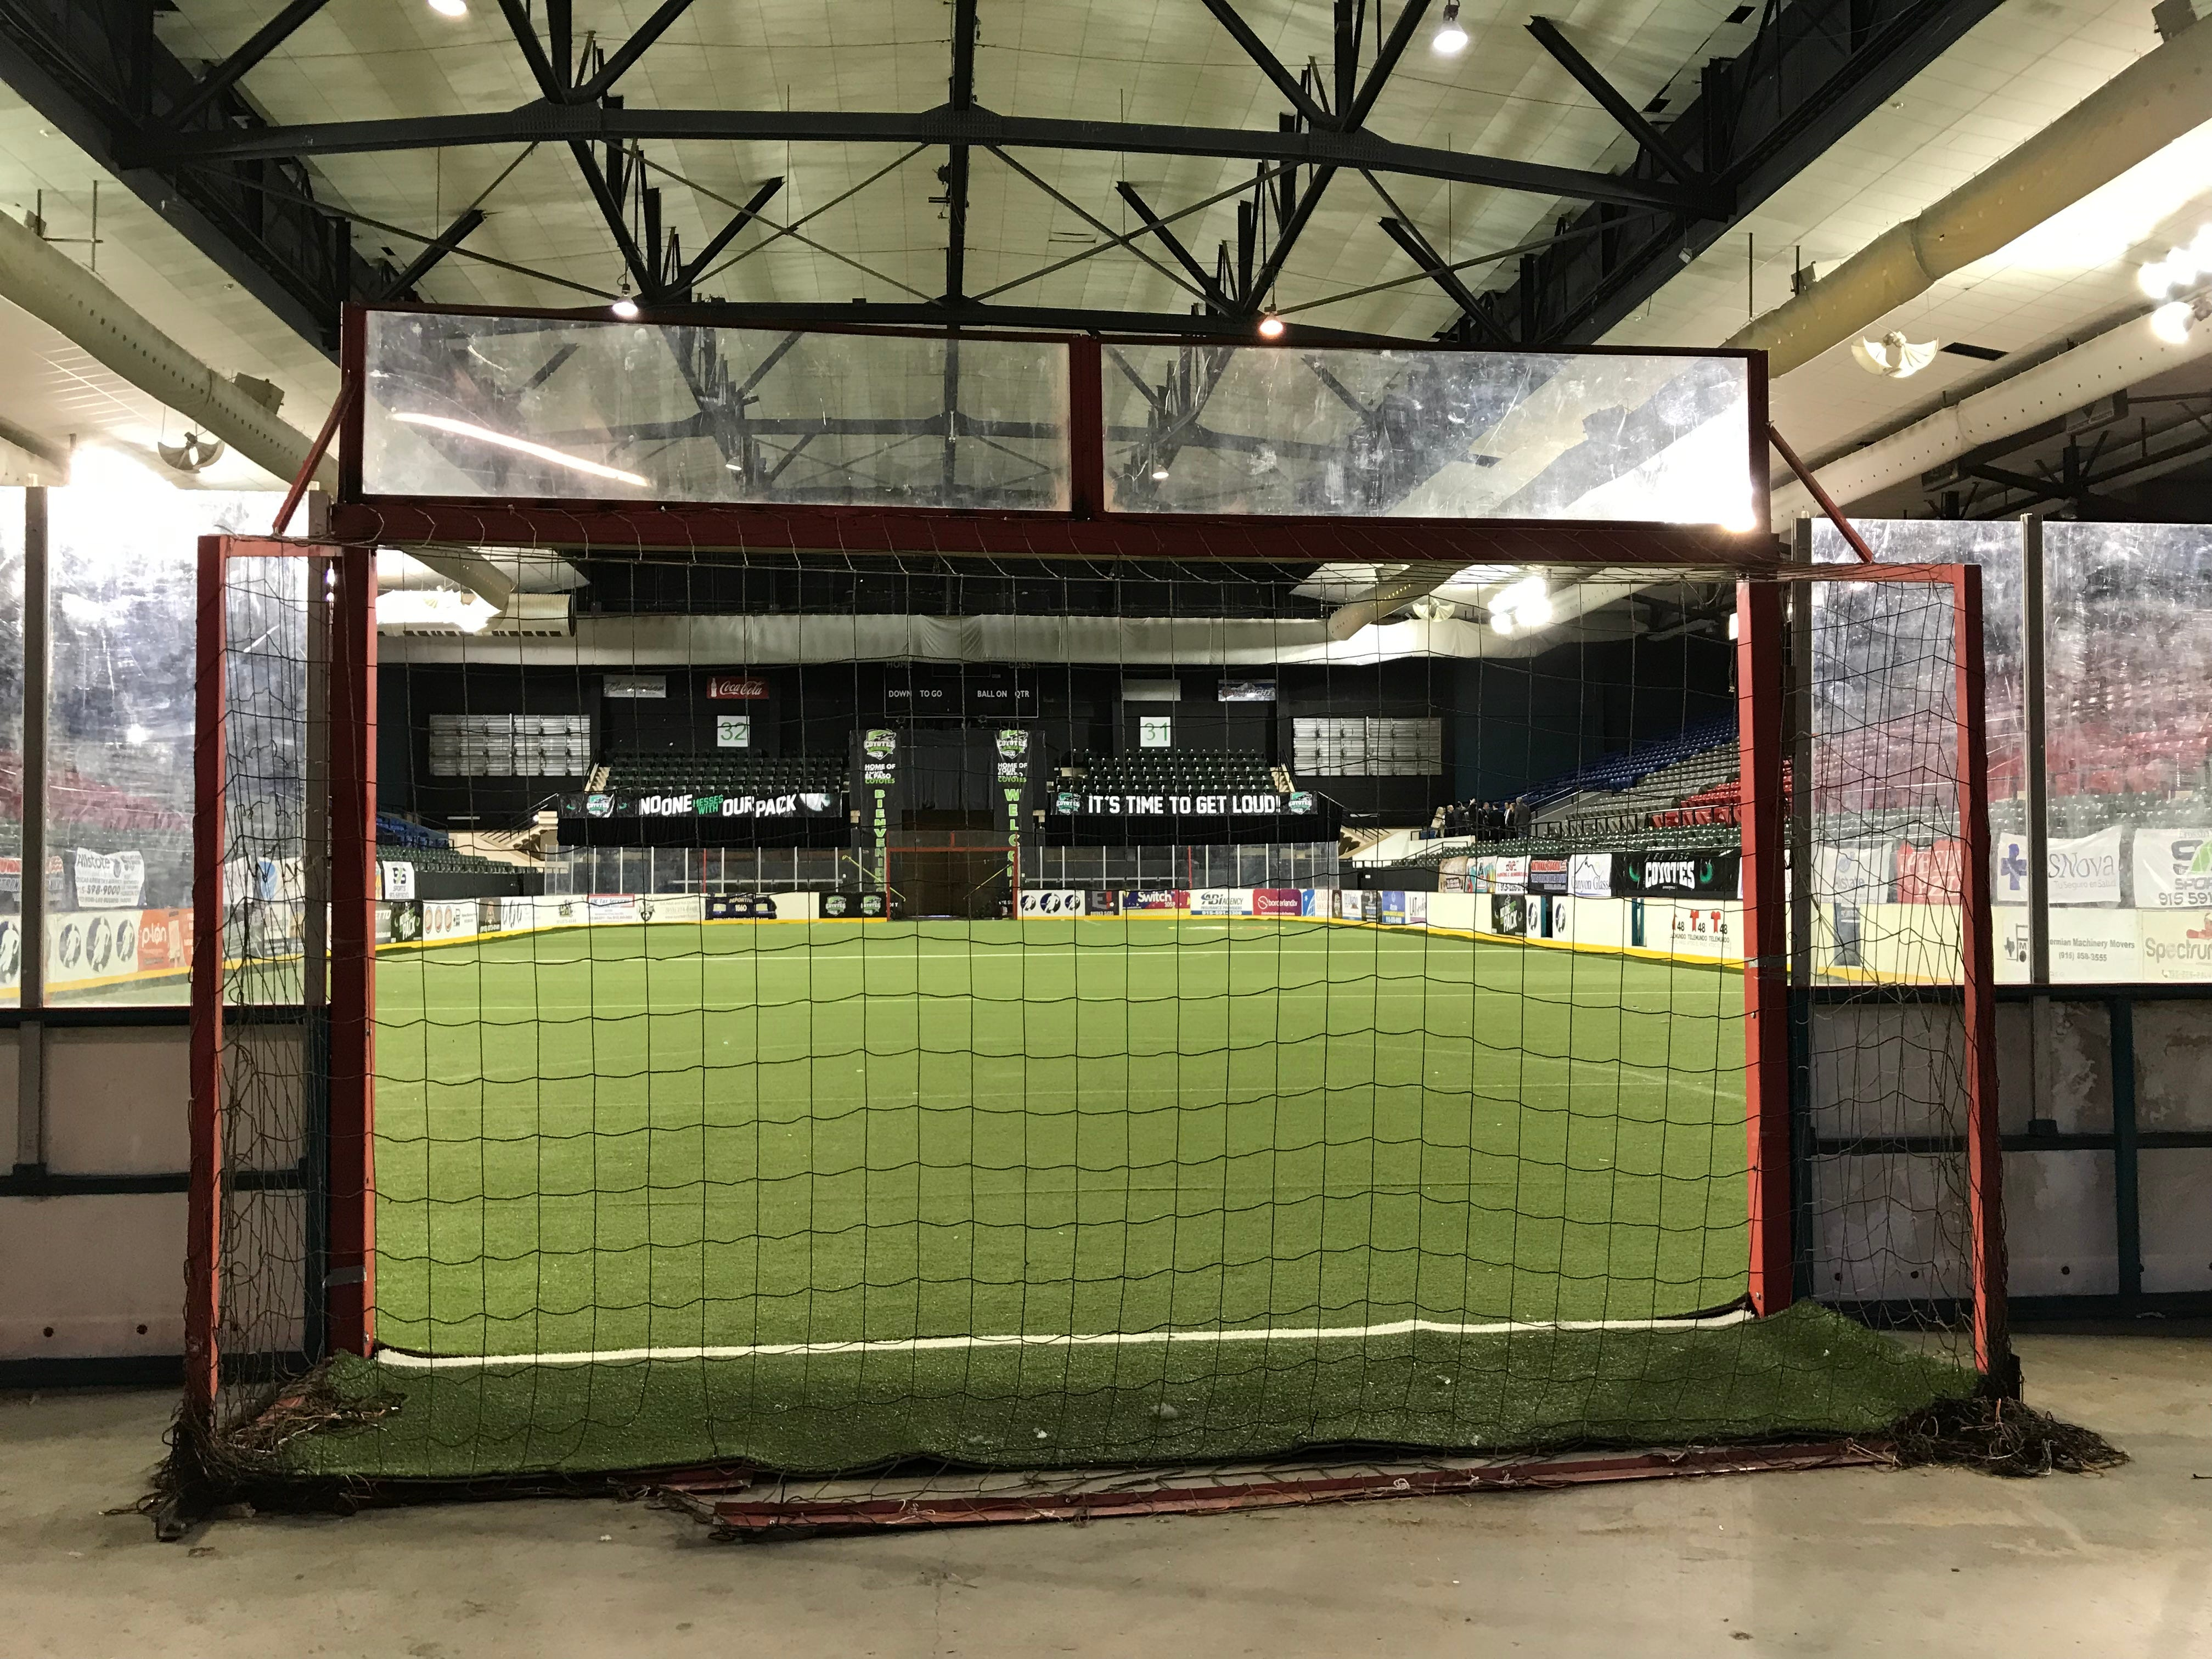 The El Paso County Coliseum on Wednesday, Feb. 6, 2019, was set up with turf on the floor for soccer.